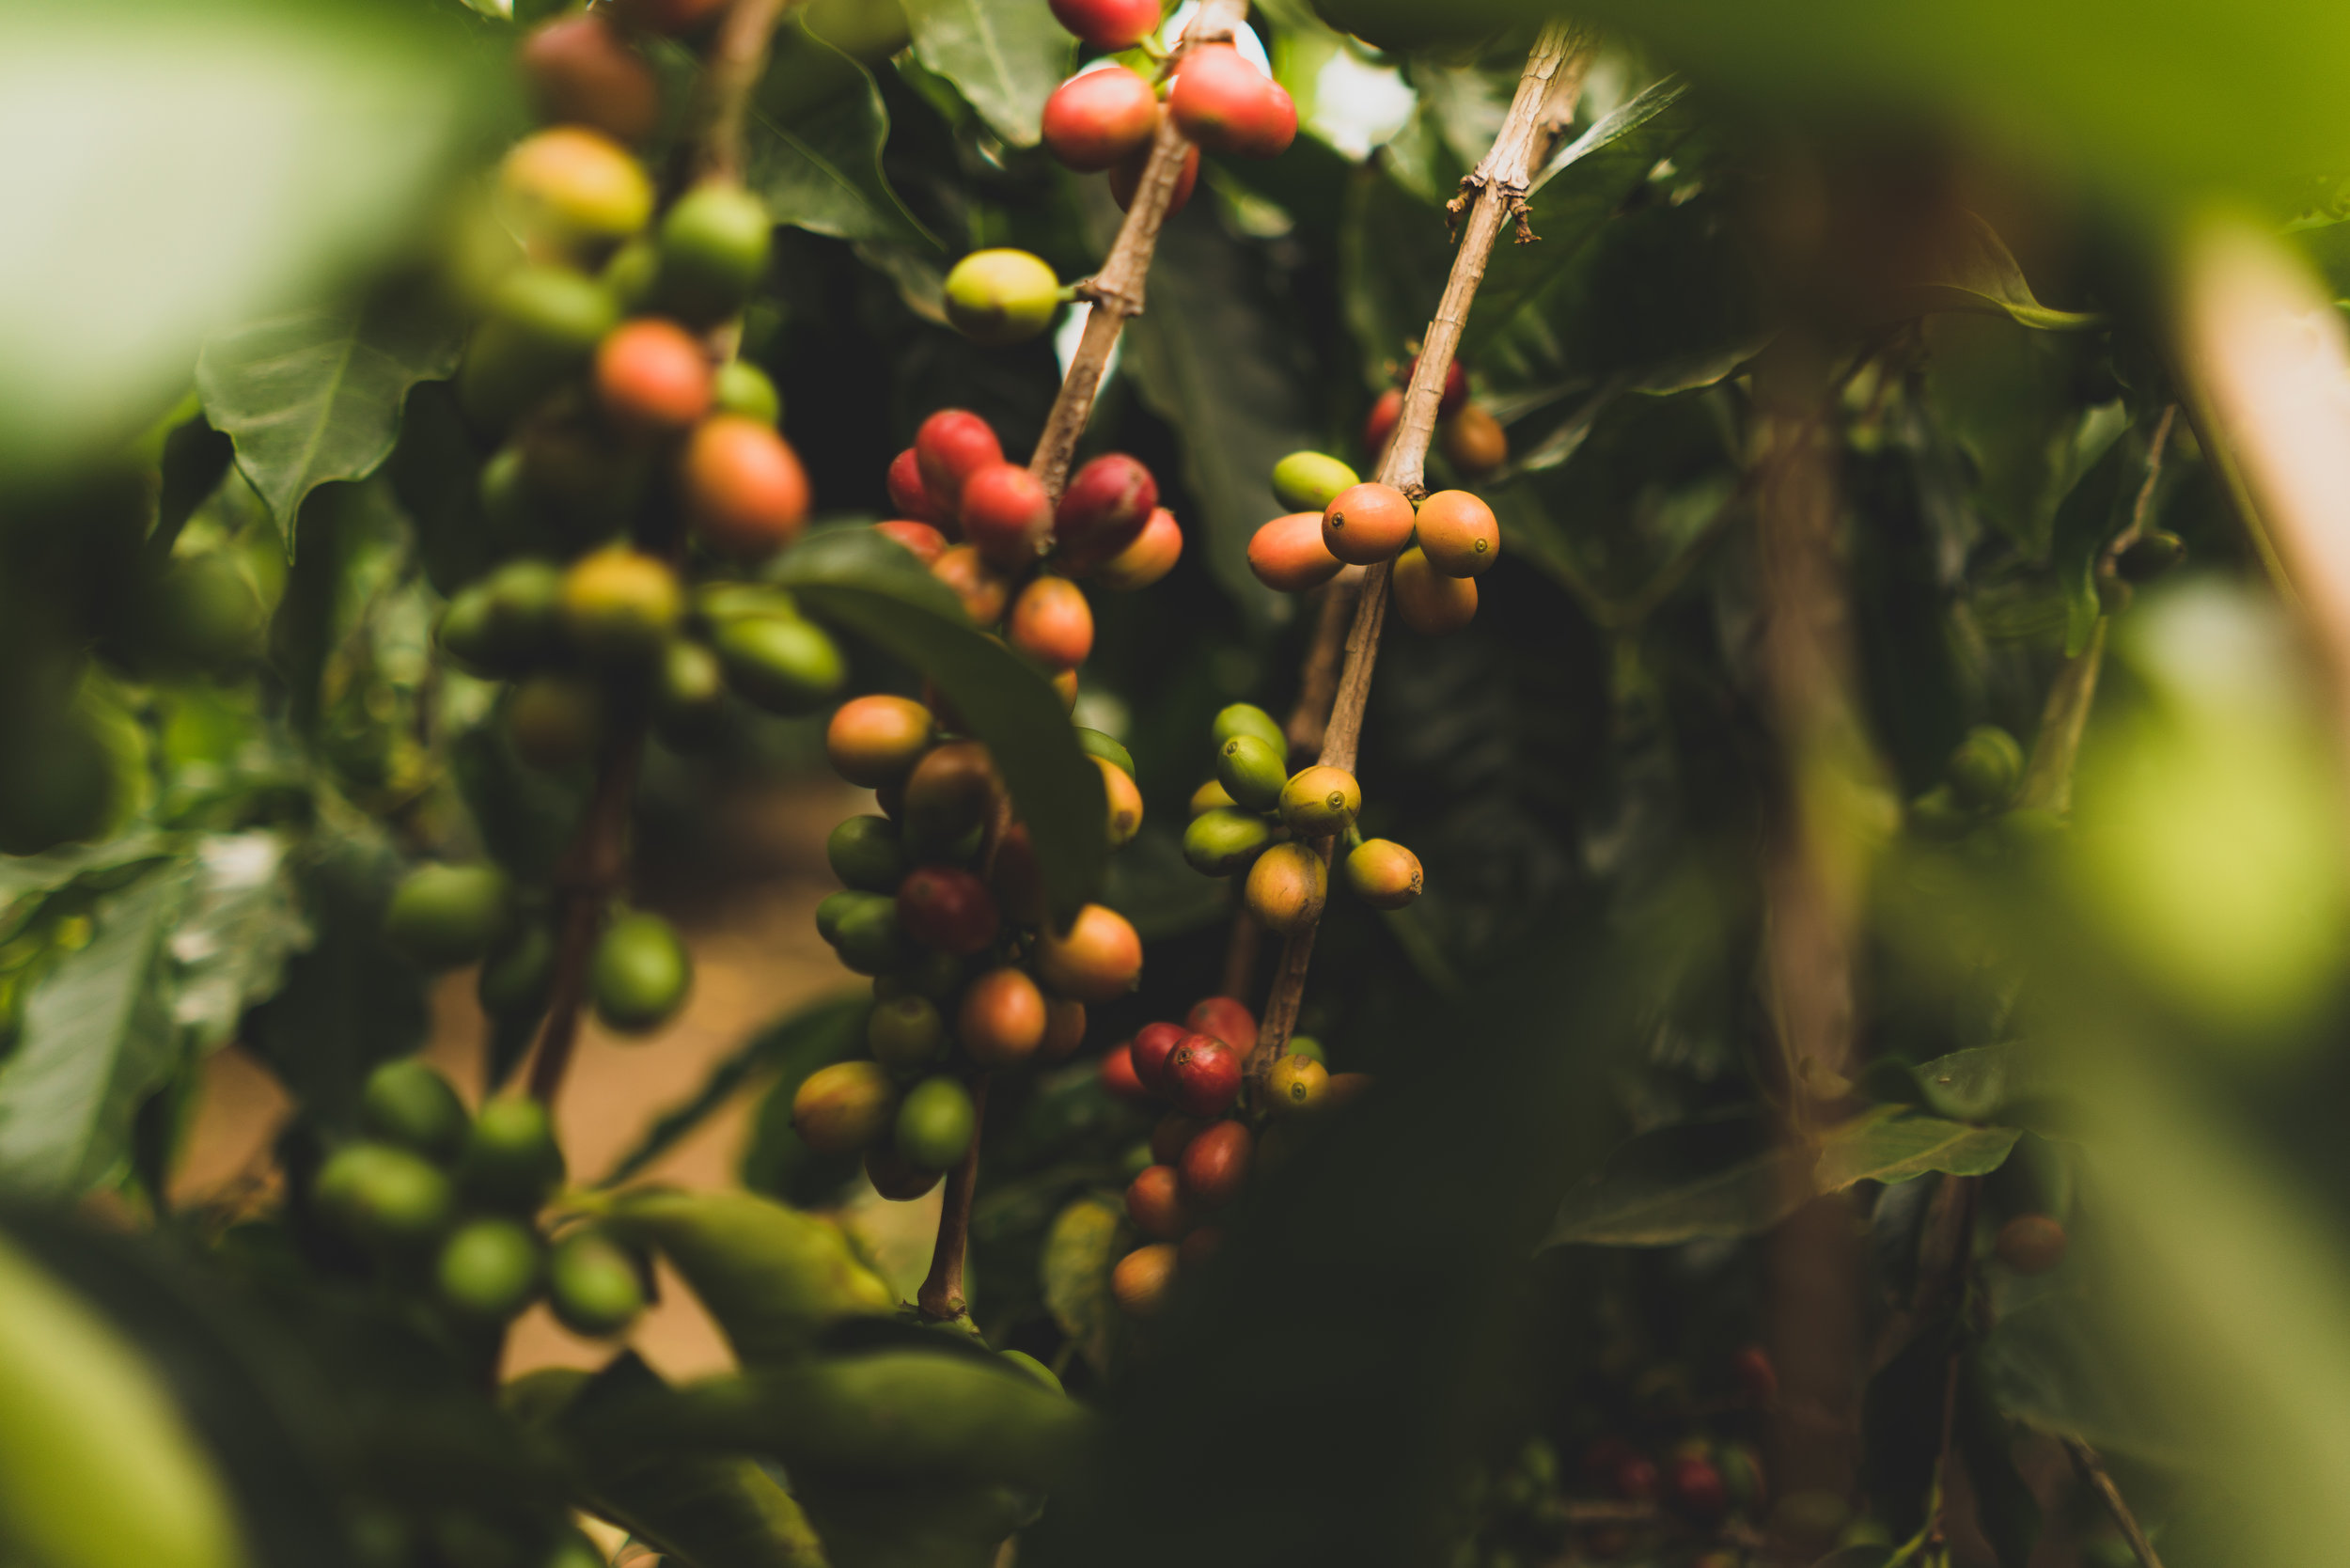 La Serrañía Decaf - Origin: Huila, ColombiaNotes: Chocolate, Blueberry, CitrusVarieties: Caturra, Castillo, ColombiaProcess: semi-shade grown, fully washed and fully sun-driedAltitude: 1,500-1,750 MASLLa Serrañía is a Colombian coffee grown in the Municipality of Pitalito, Department of Huila at an altitude of 1500-1750 meters above sea level. It is shade grown and processed with the wash method. The decaffeination process of this coffee is quite unique and is called the Ethyl Acetate process, one of the most natural and sustainable ways to decaffeinate coffee.Brewing Methods: Great for filtered coffee and espresso: Most coffee enthusiasts shy away from decafs because they are boring, but this decaf is a great surprise and has exciting flavors.